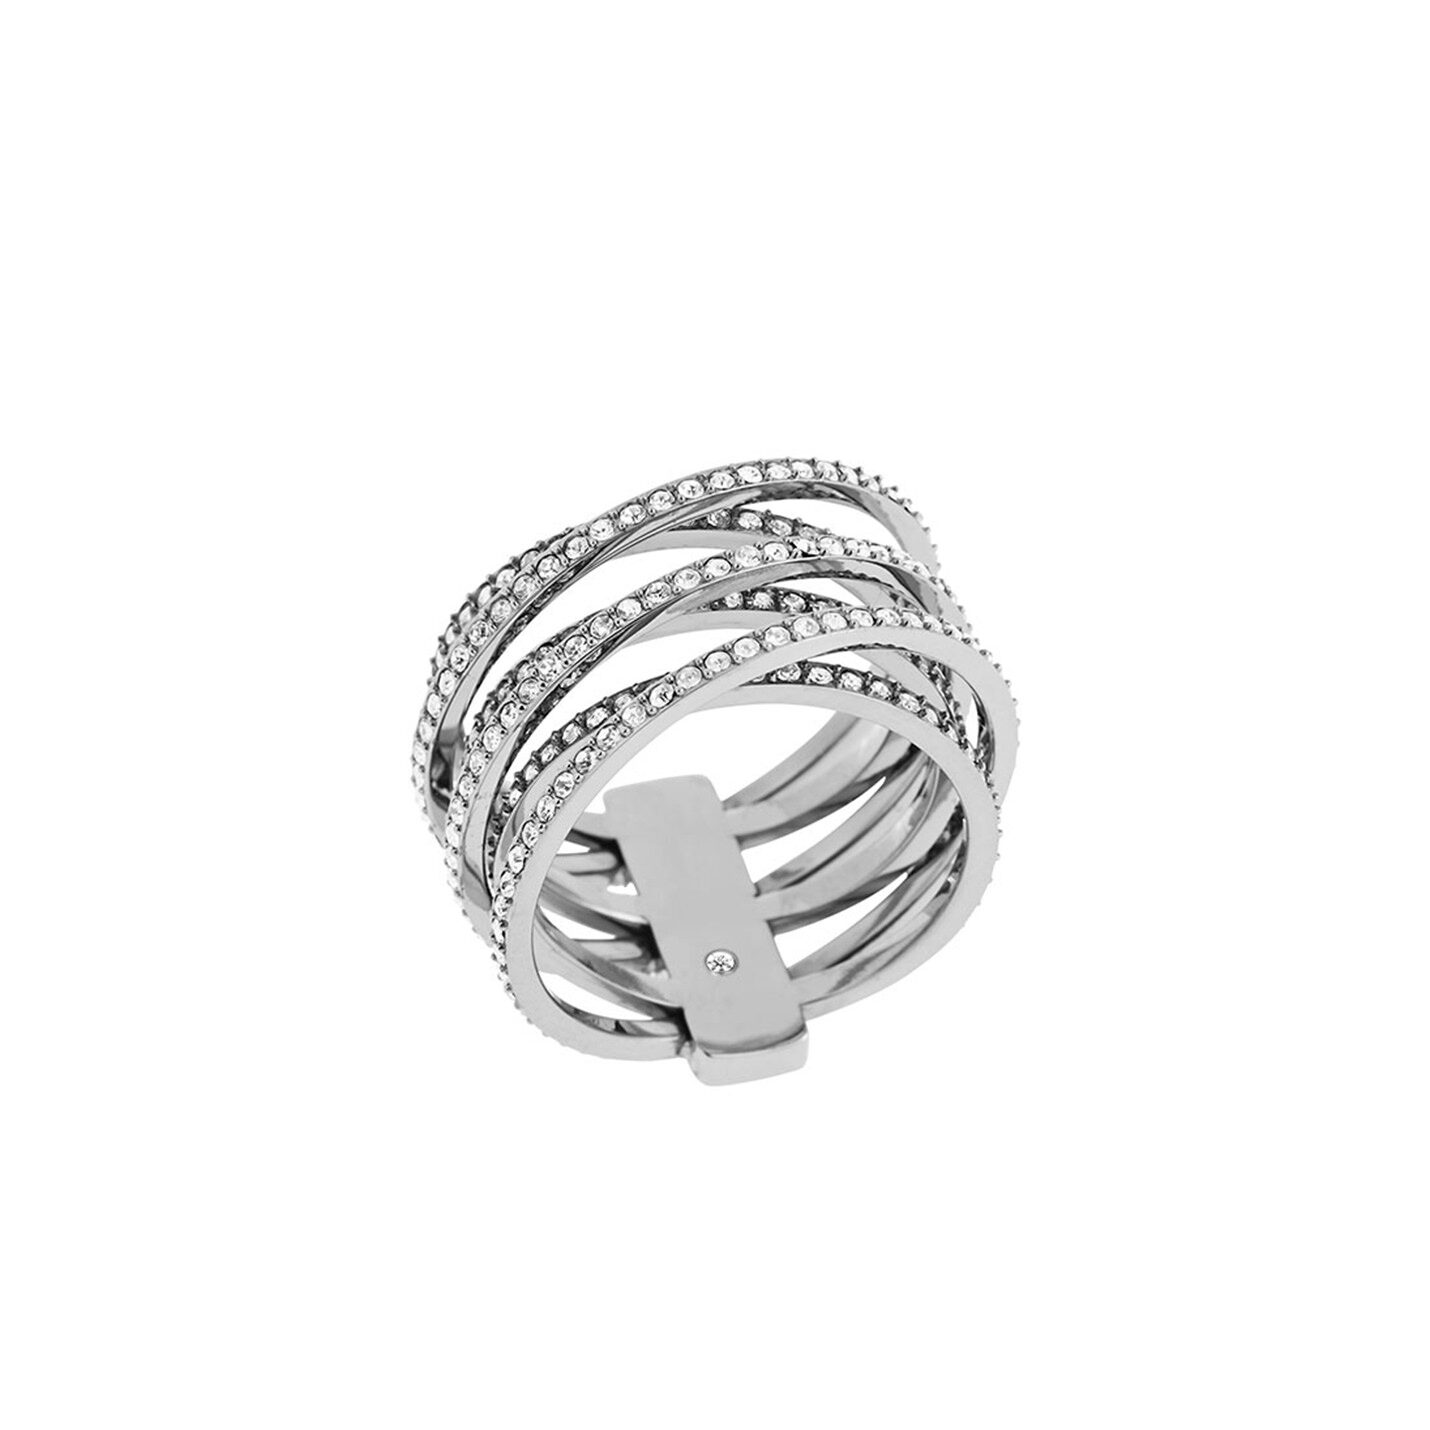 Michael Kors 'Brilliance' Pave Cross-Over Ring